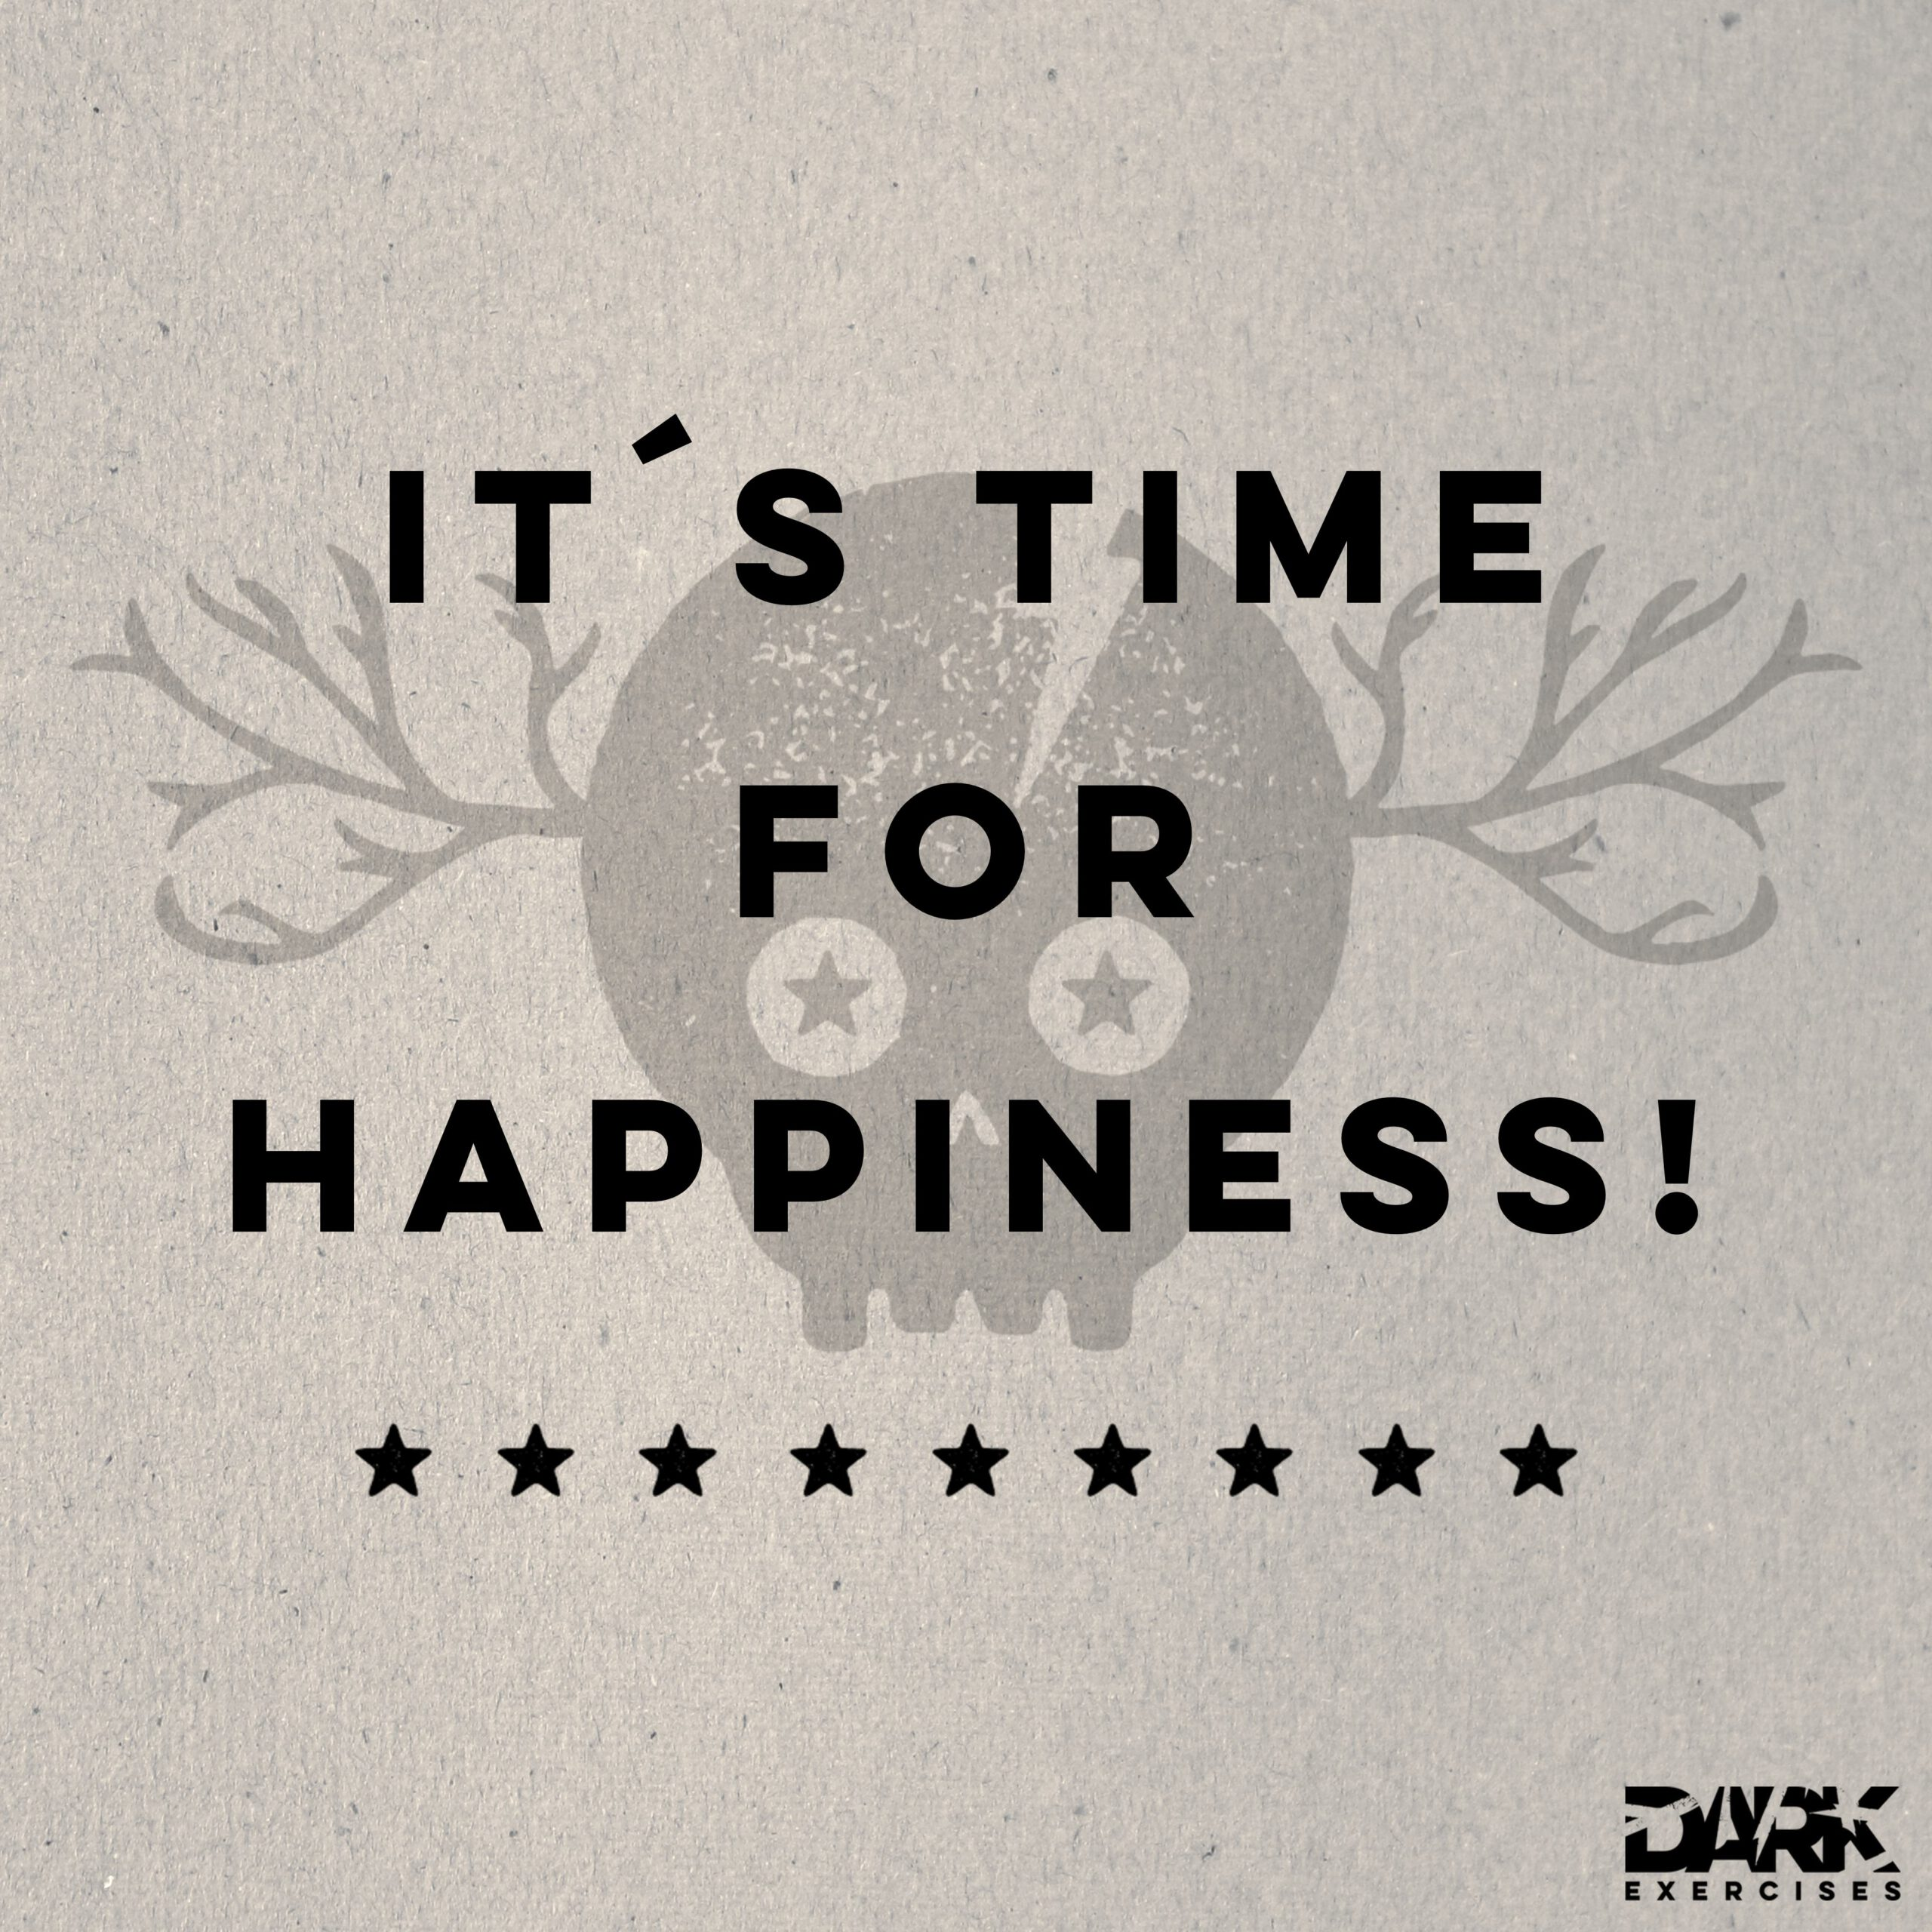 It's time for happiness